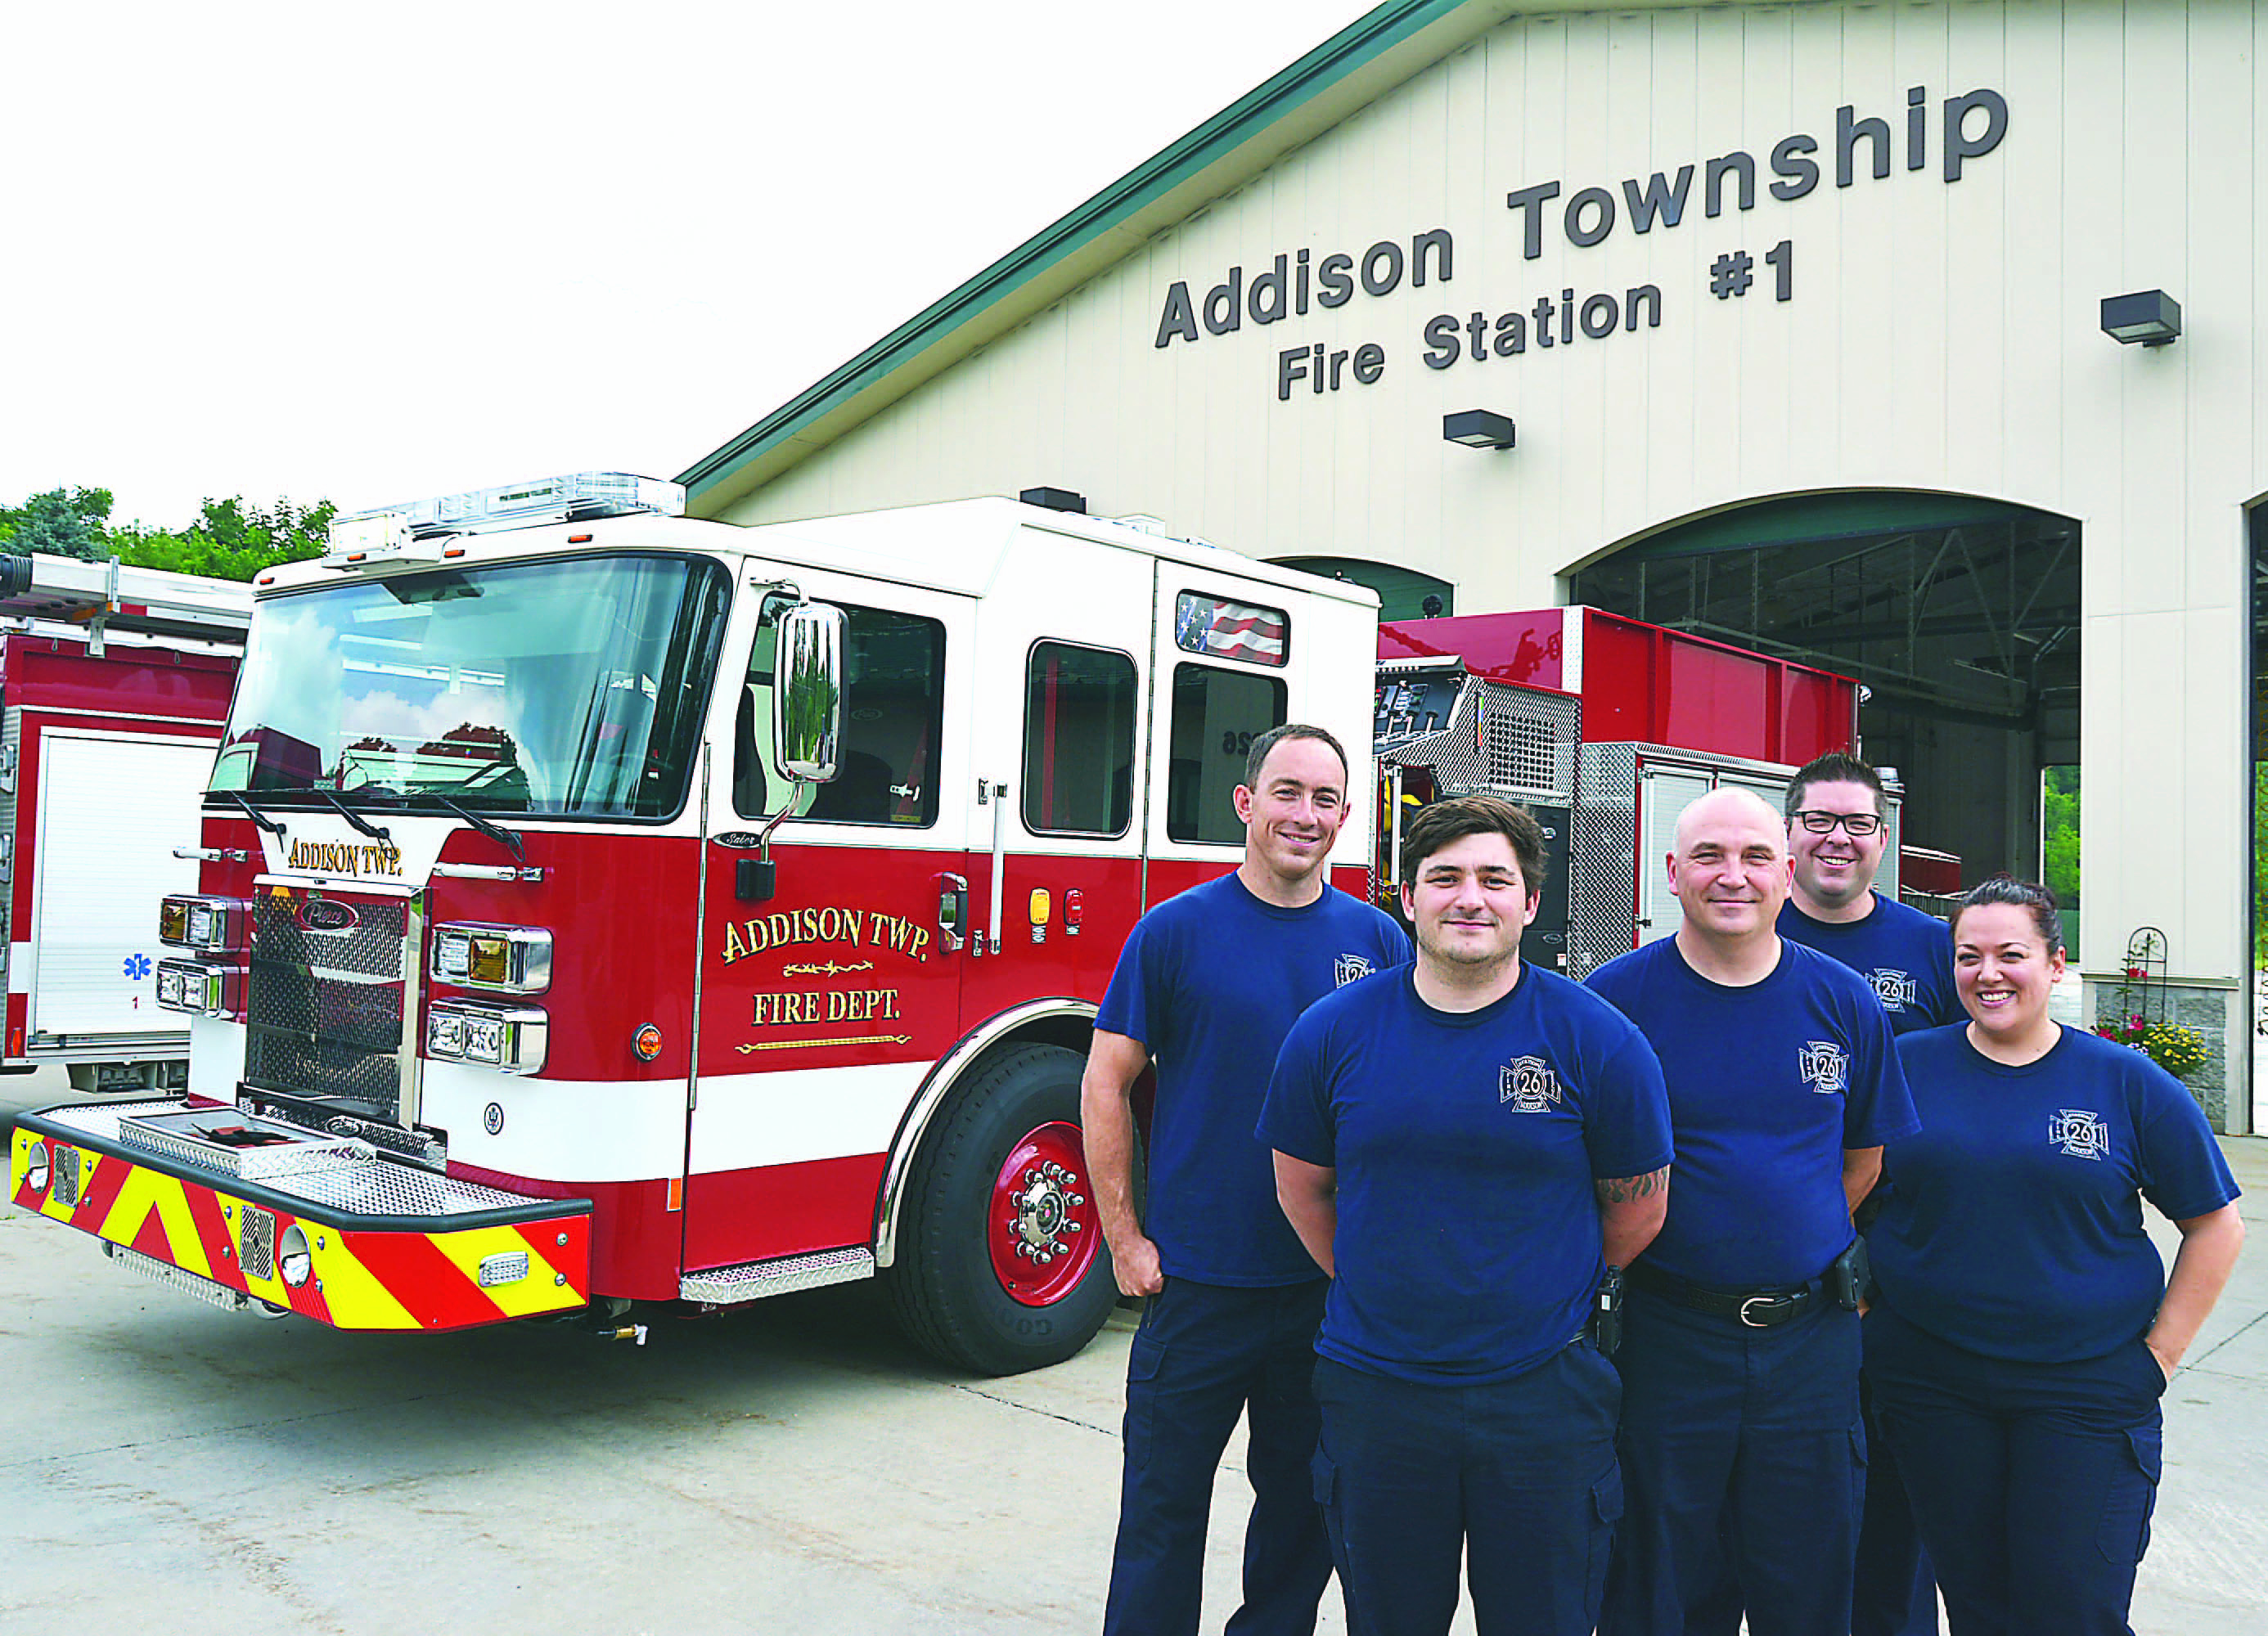 Posing with the new engine are (from left) Lt. Dan Cline, Firefighter Tyler Hunsucker, Chief Jerry Morawski  and firefighters Rob Fitzpatrick  and Angela Logan. Photo by  C.J. Carnacchio.